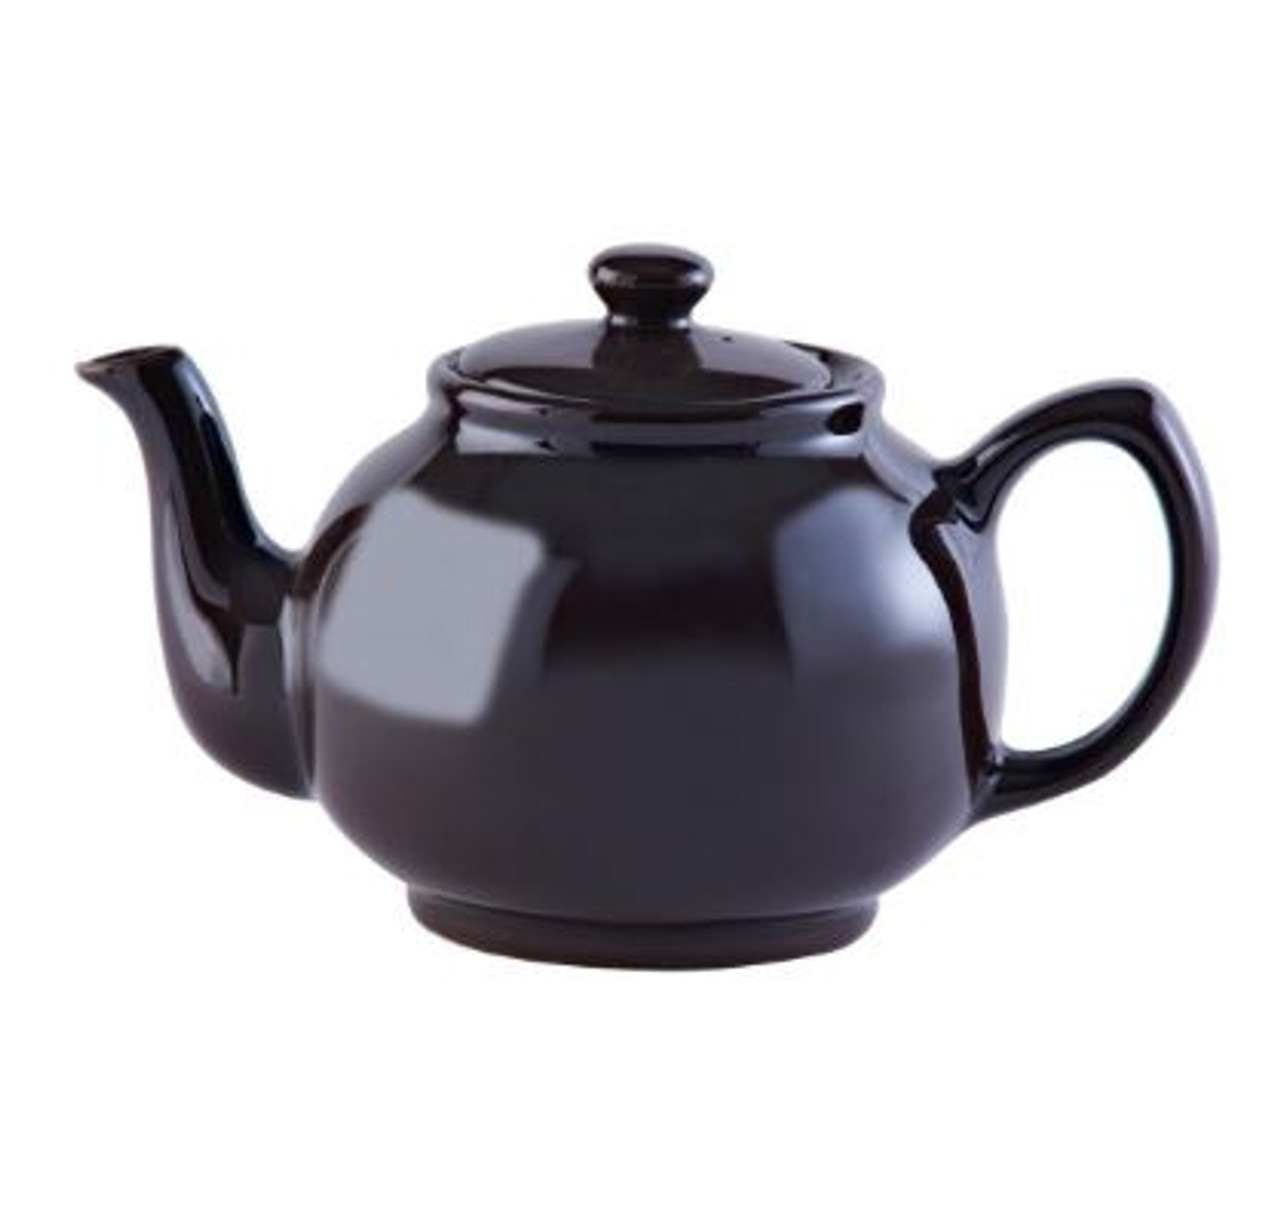 BRIGHTS TEA POT - ROCKINGHAM - 6 CUP